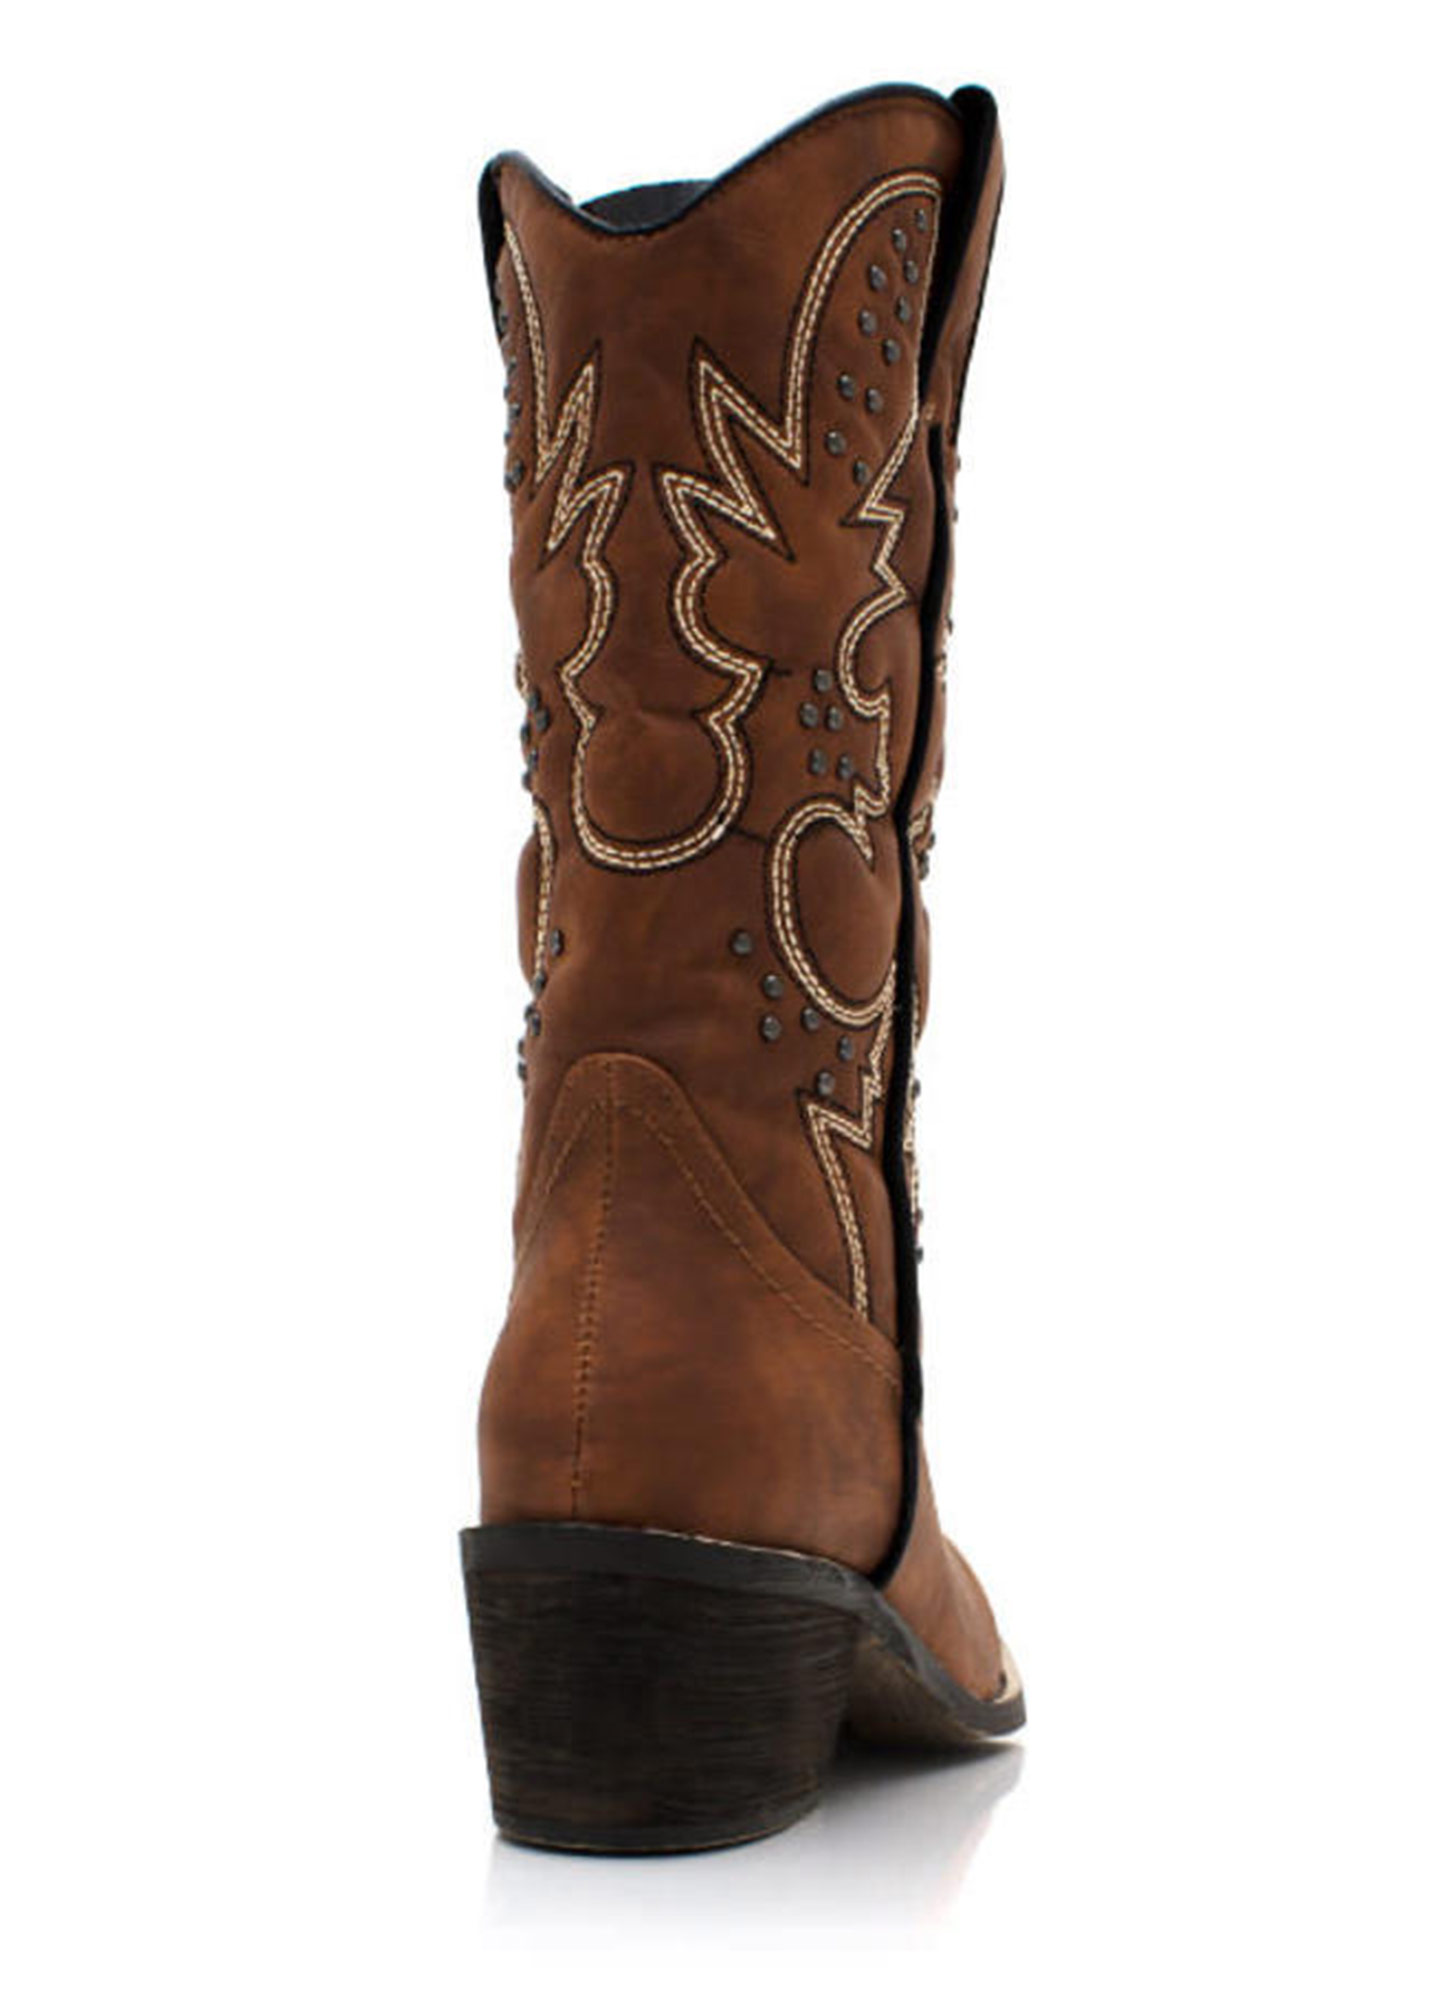 Get Stitches Studded Cowgirl Boots CHESTNUT (Final Sale)